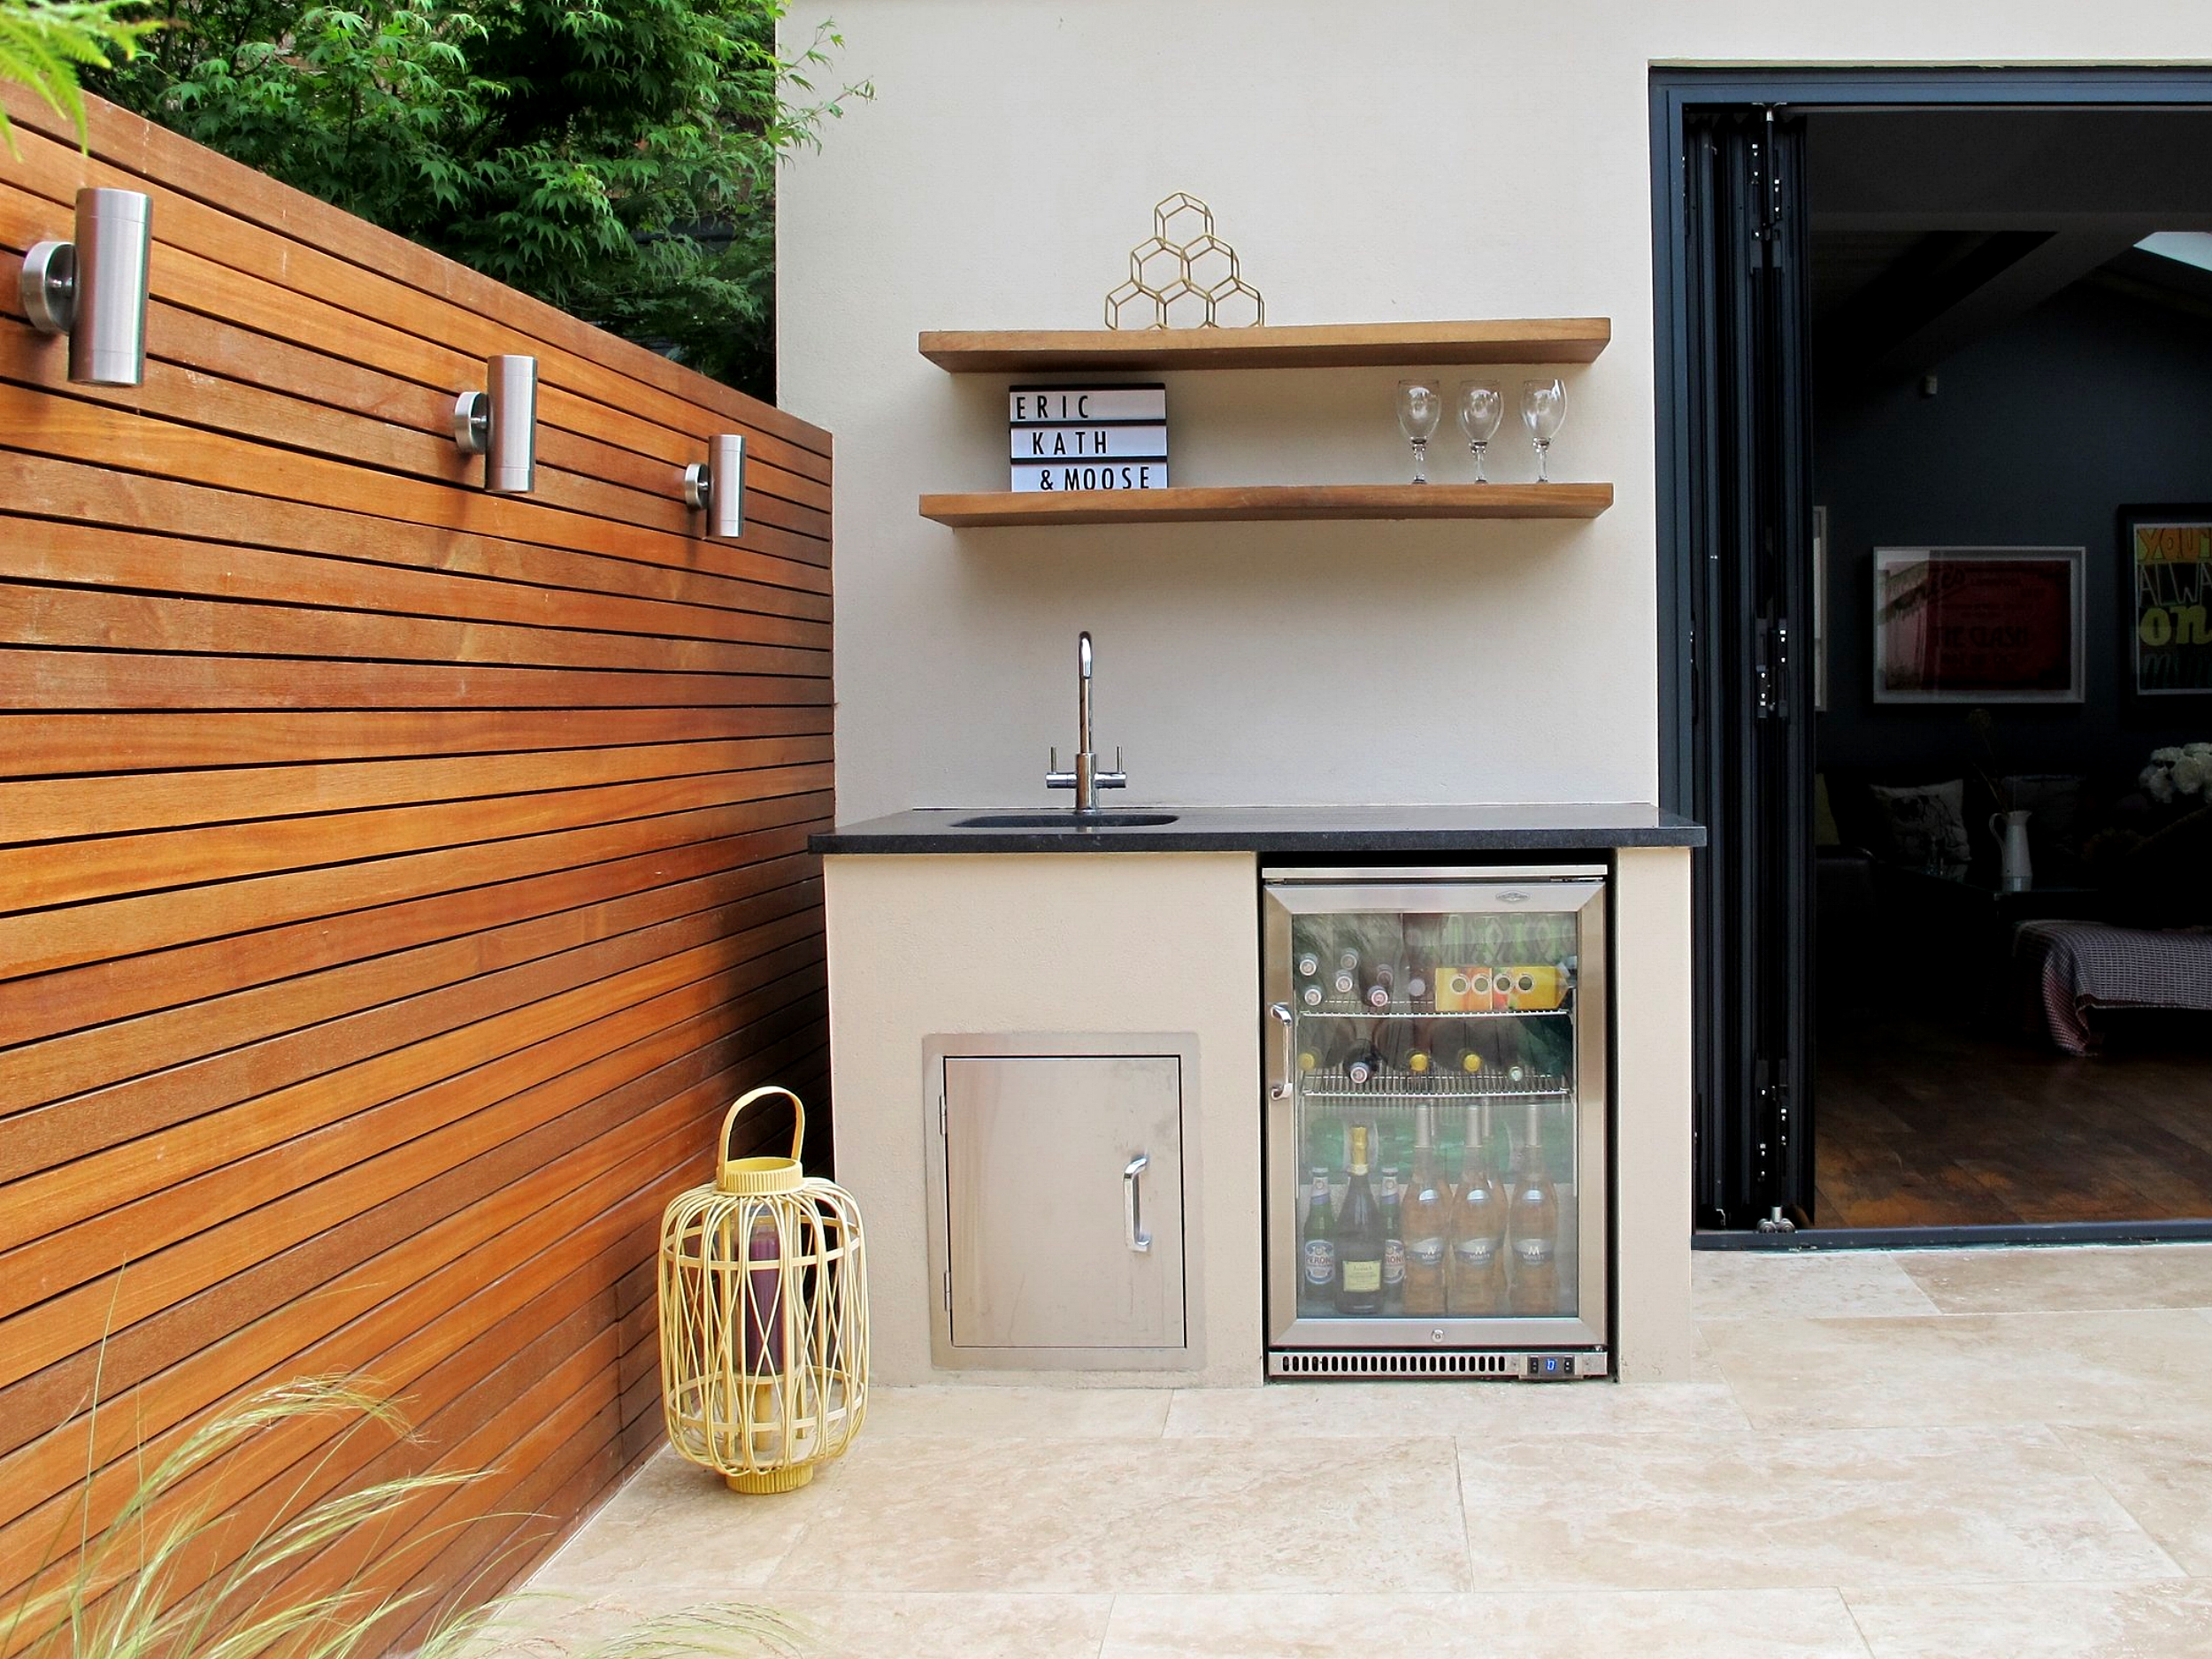 Kew-London-Outdoor-Kitchen-Cat-Howard-Garden-Design.jpeg